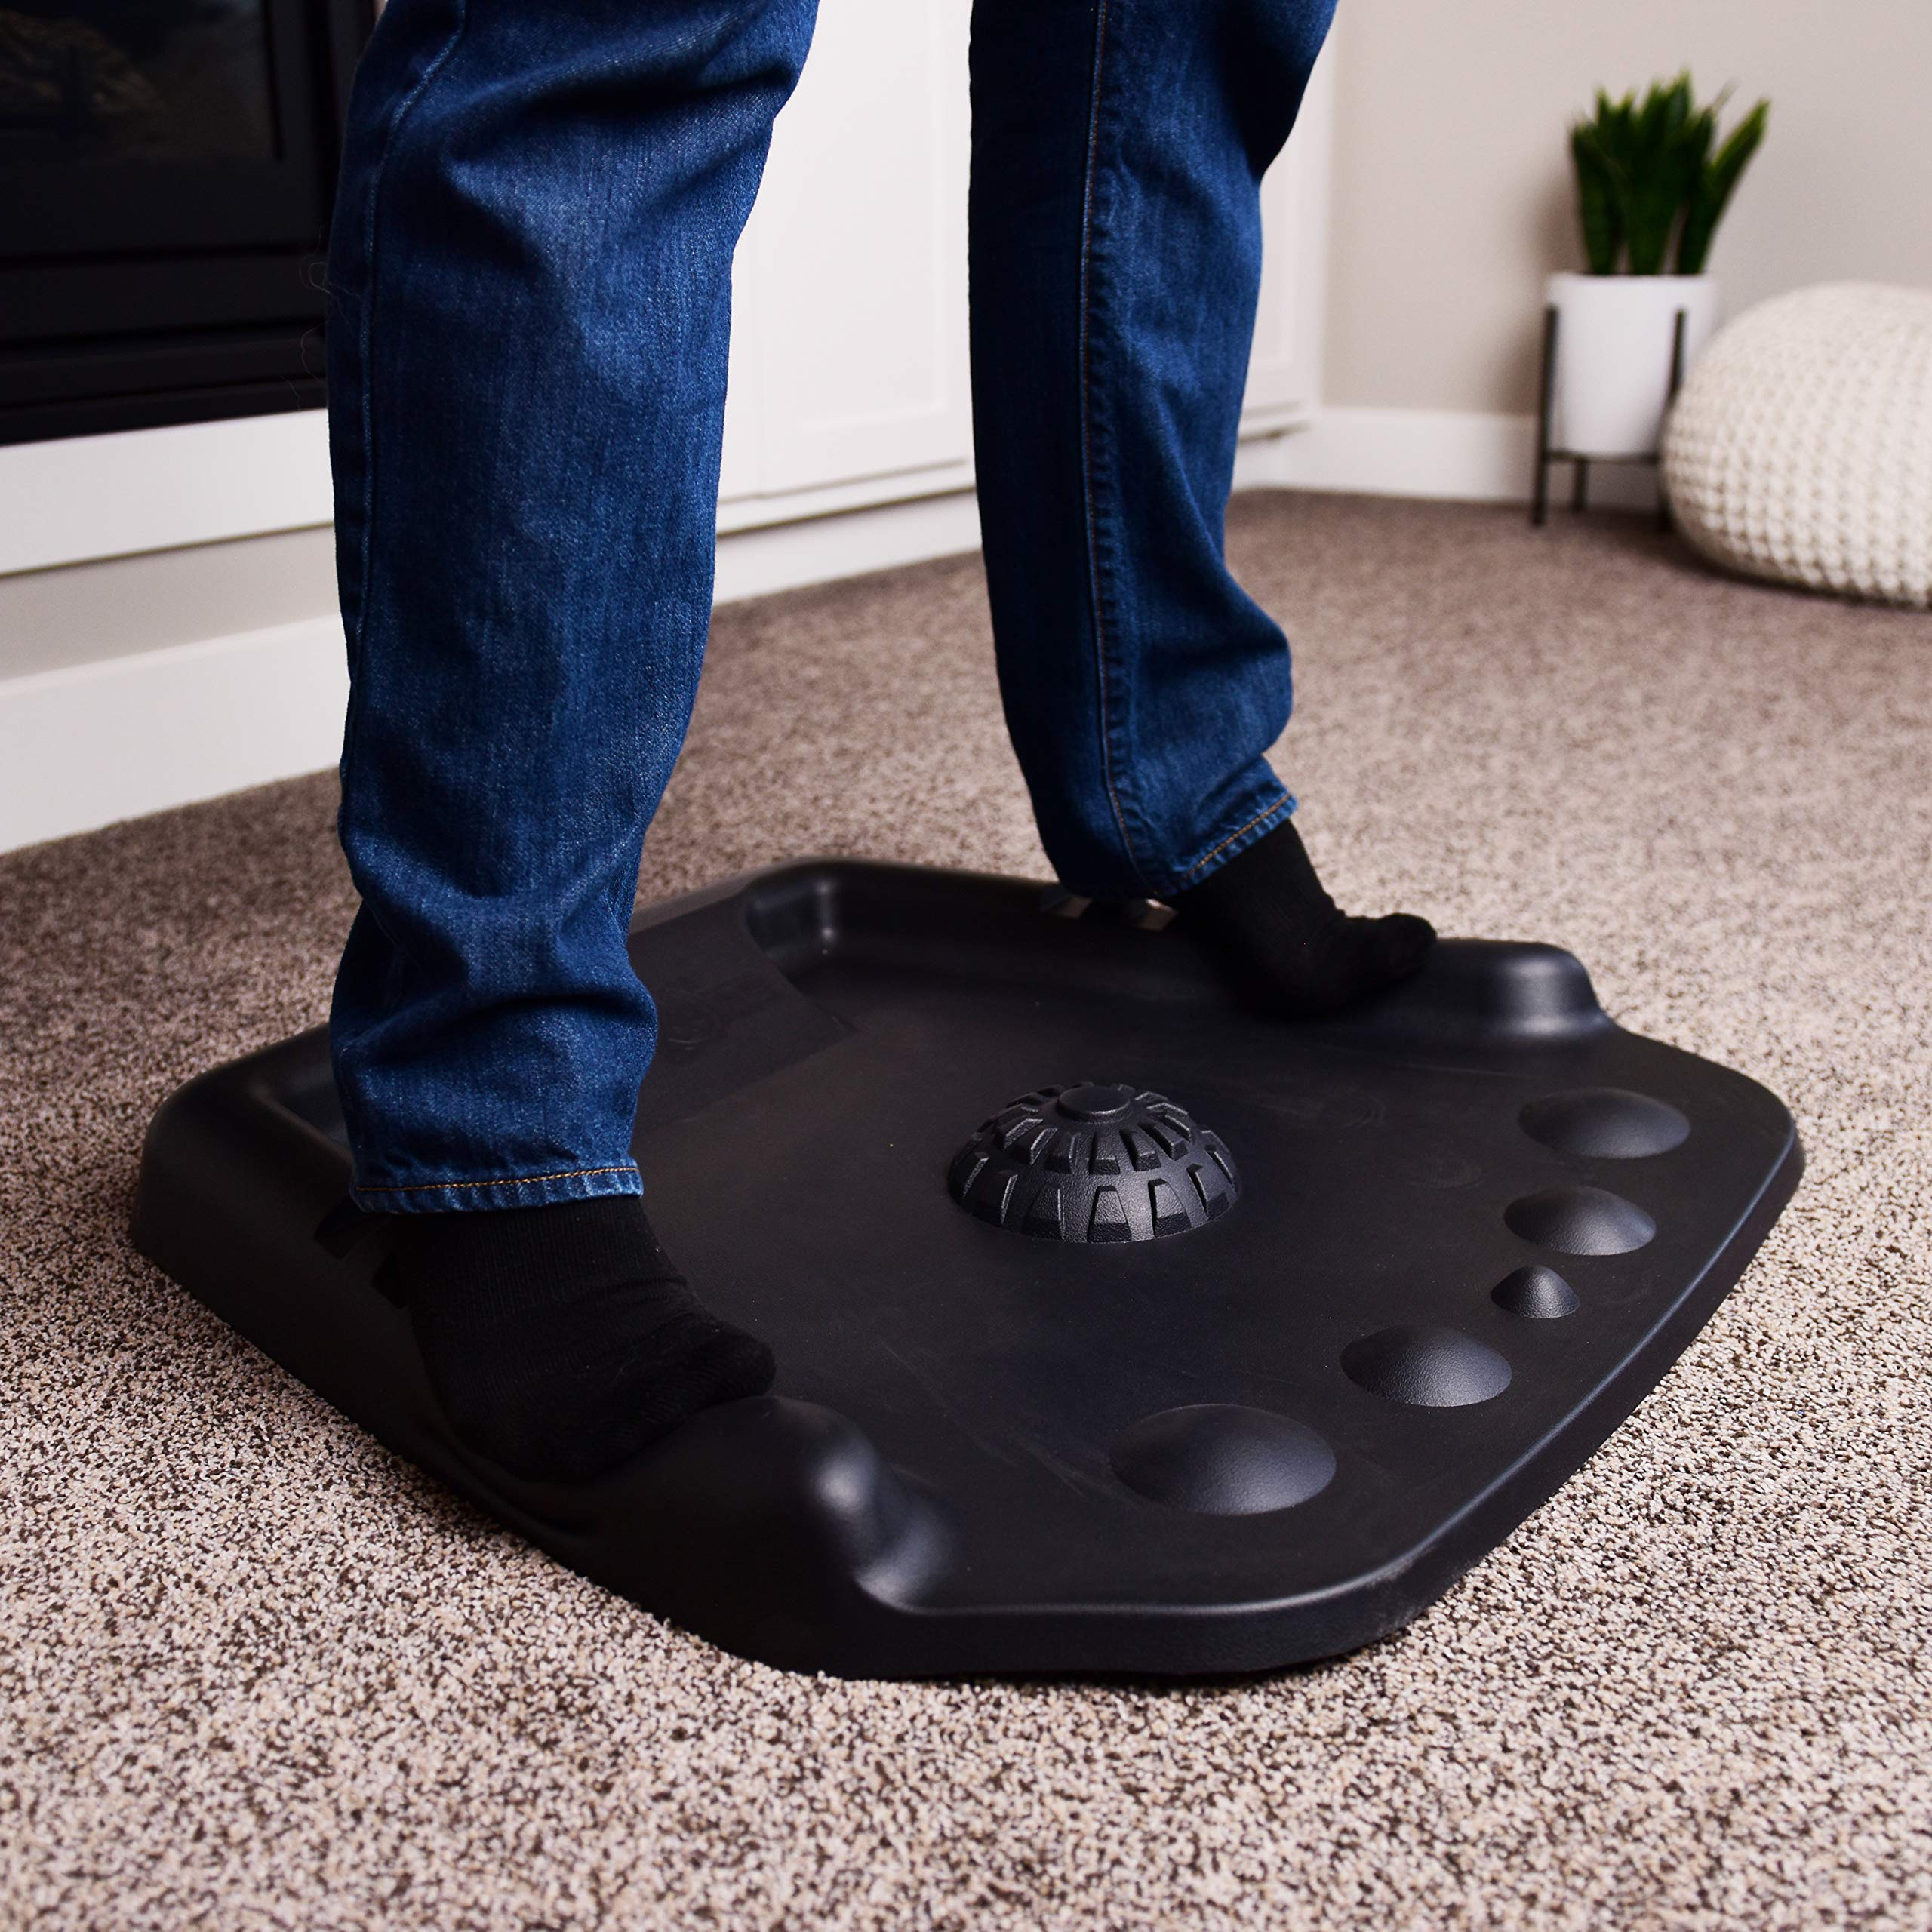 Best Standing Desk Mat with Anti Fatigue Foot Design, Patent-Pending Foot Massage Features, Deluxe Comfort While You Stand, 3D Ergonomic Support Mats for Feet, Legs, Back, for Office & Home (Black)